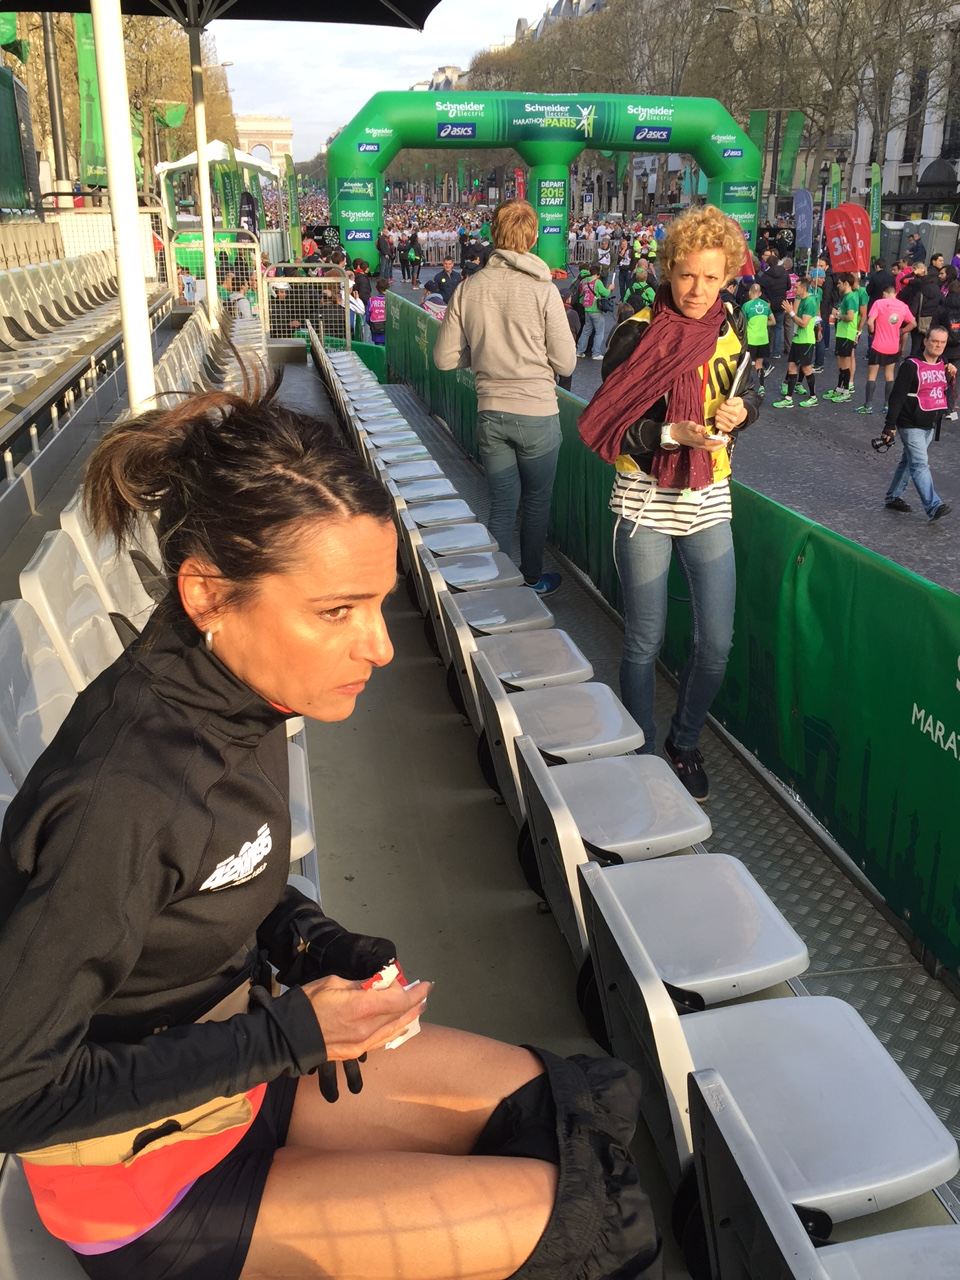 photo 11 - ALINE CAMBOULIVES A 43'' DE SON RECORD PERSONNEL AU MARATHON DE PARIS / 12-04-15